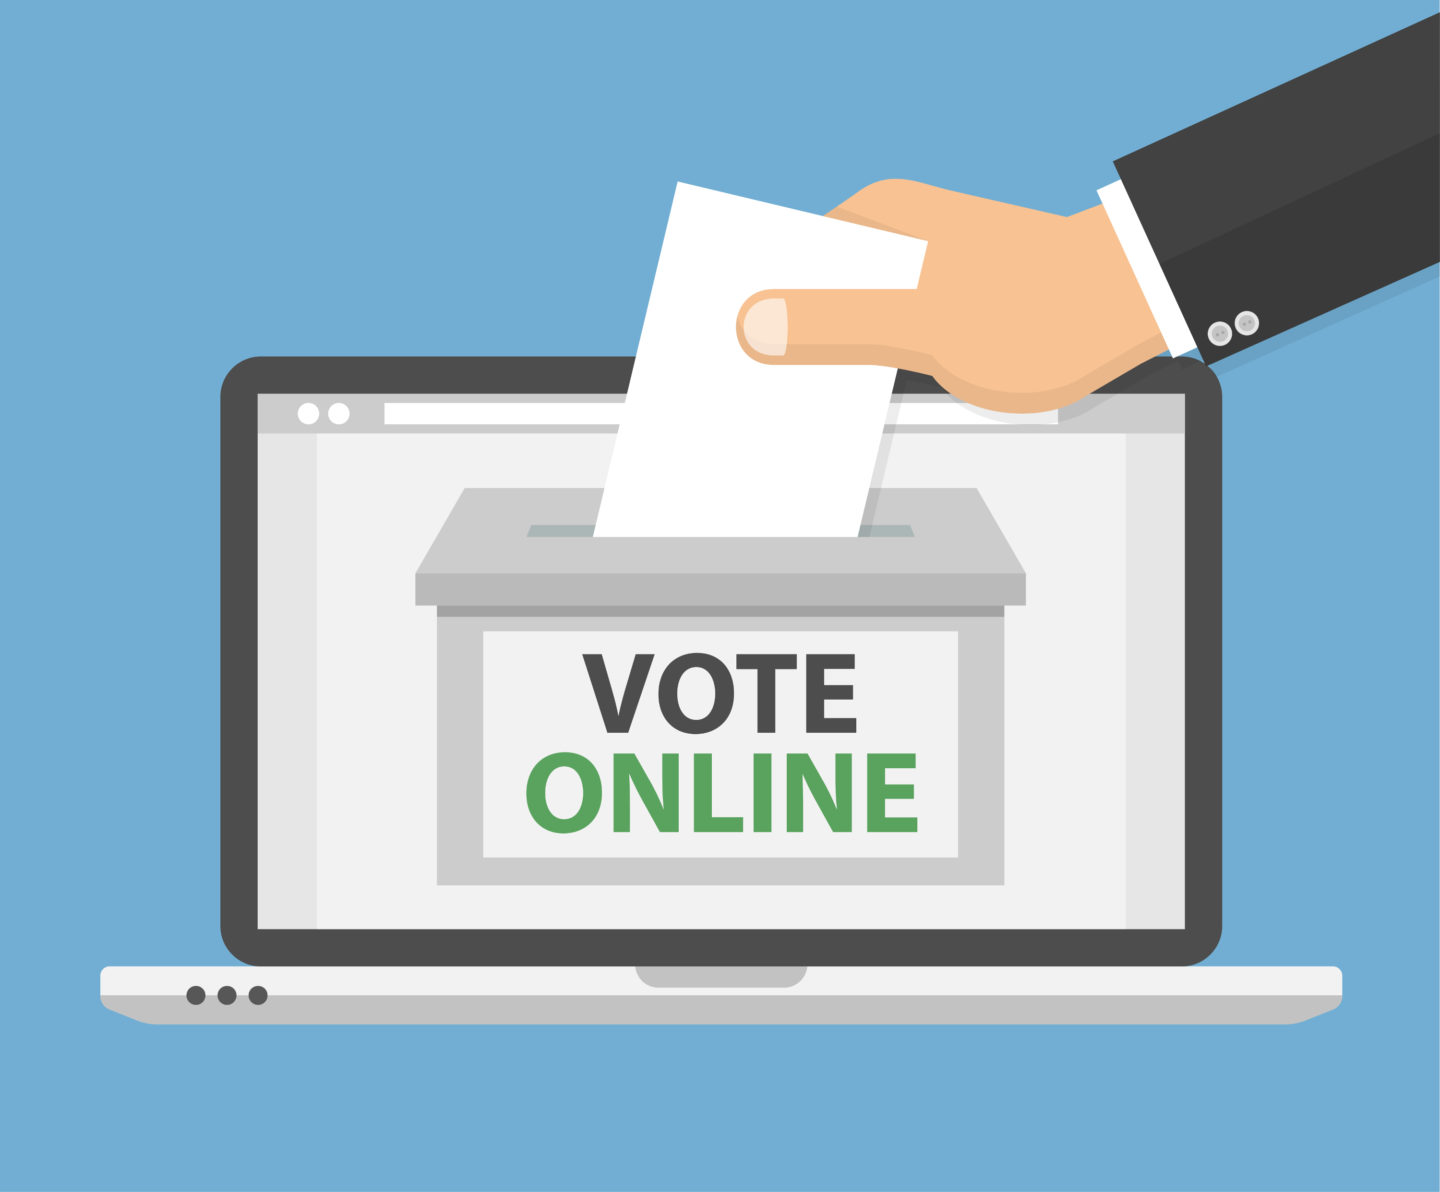 Icon Electronics Srinagar: Here's How The Online Voting System Will Work For The